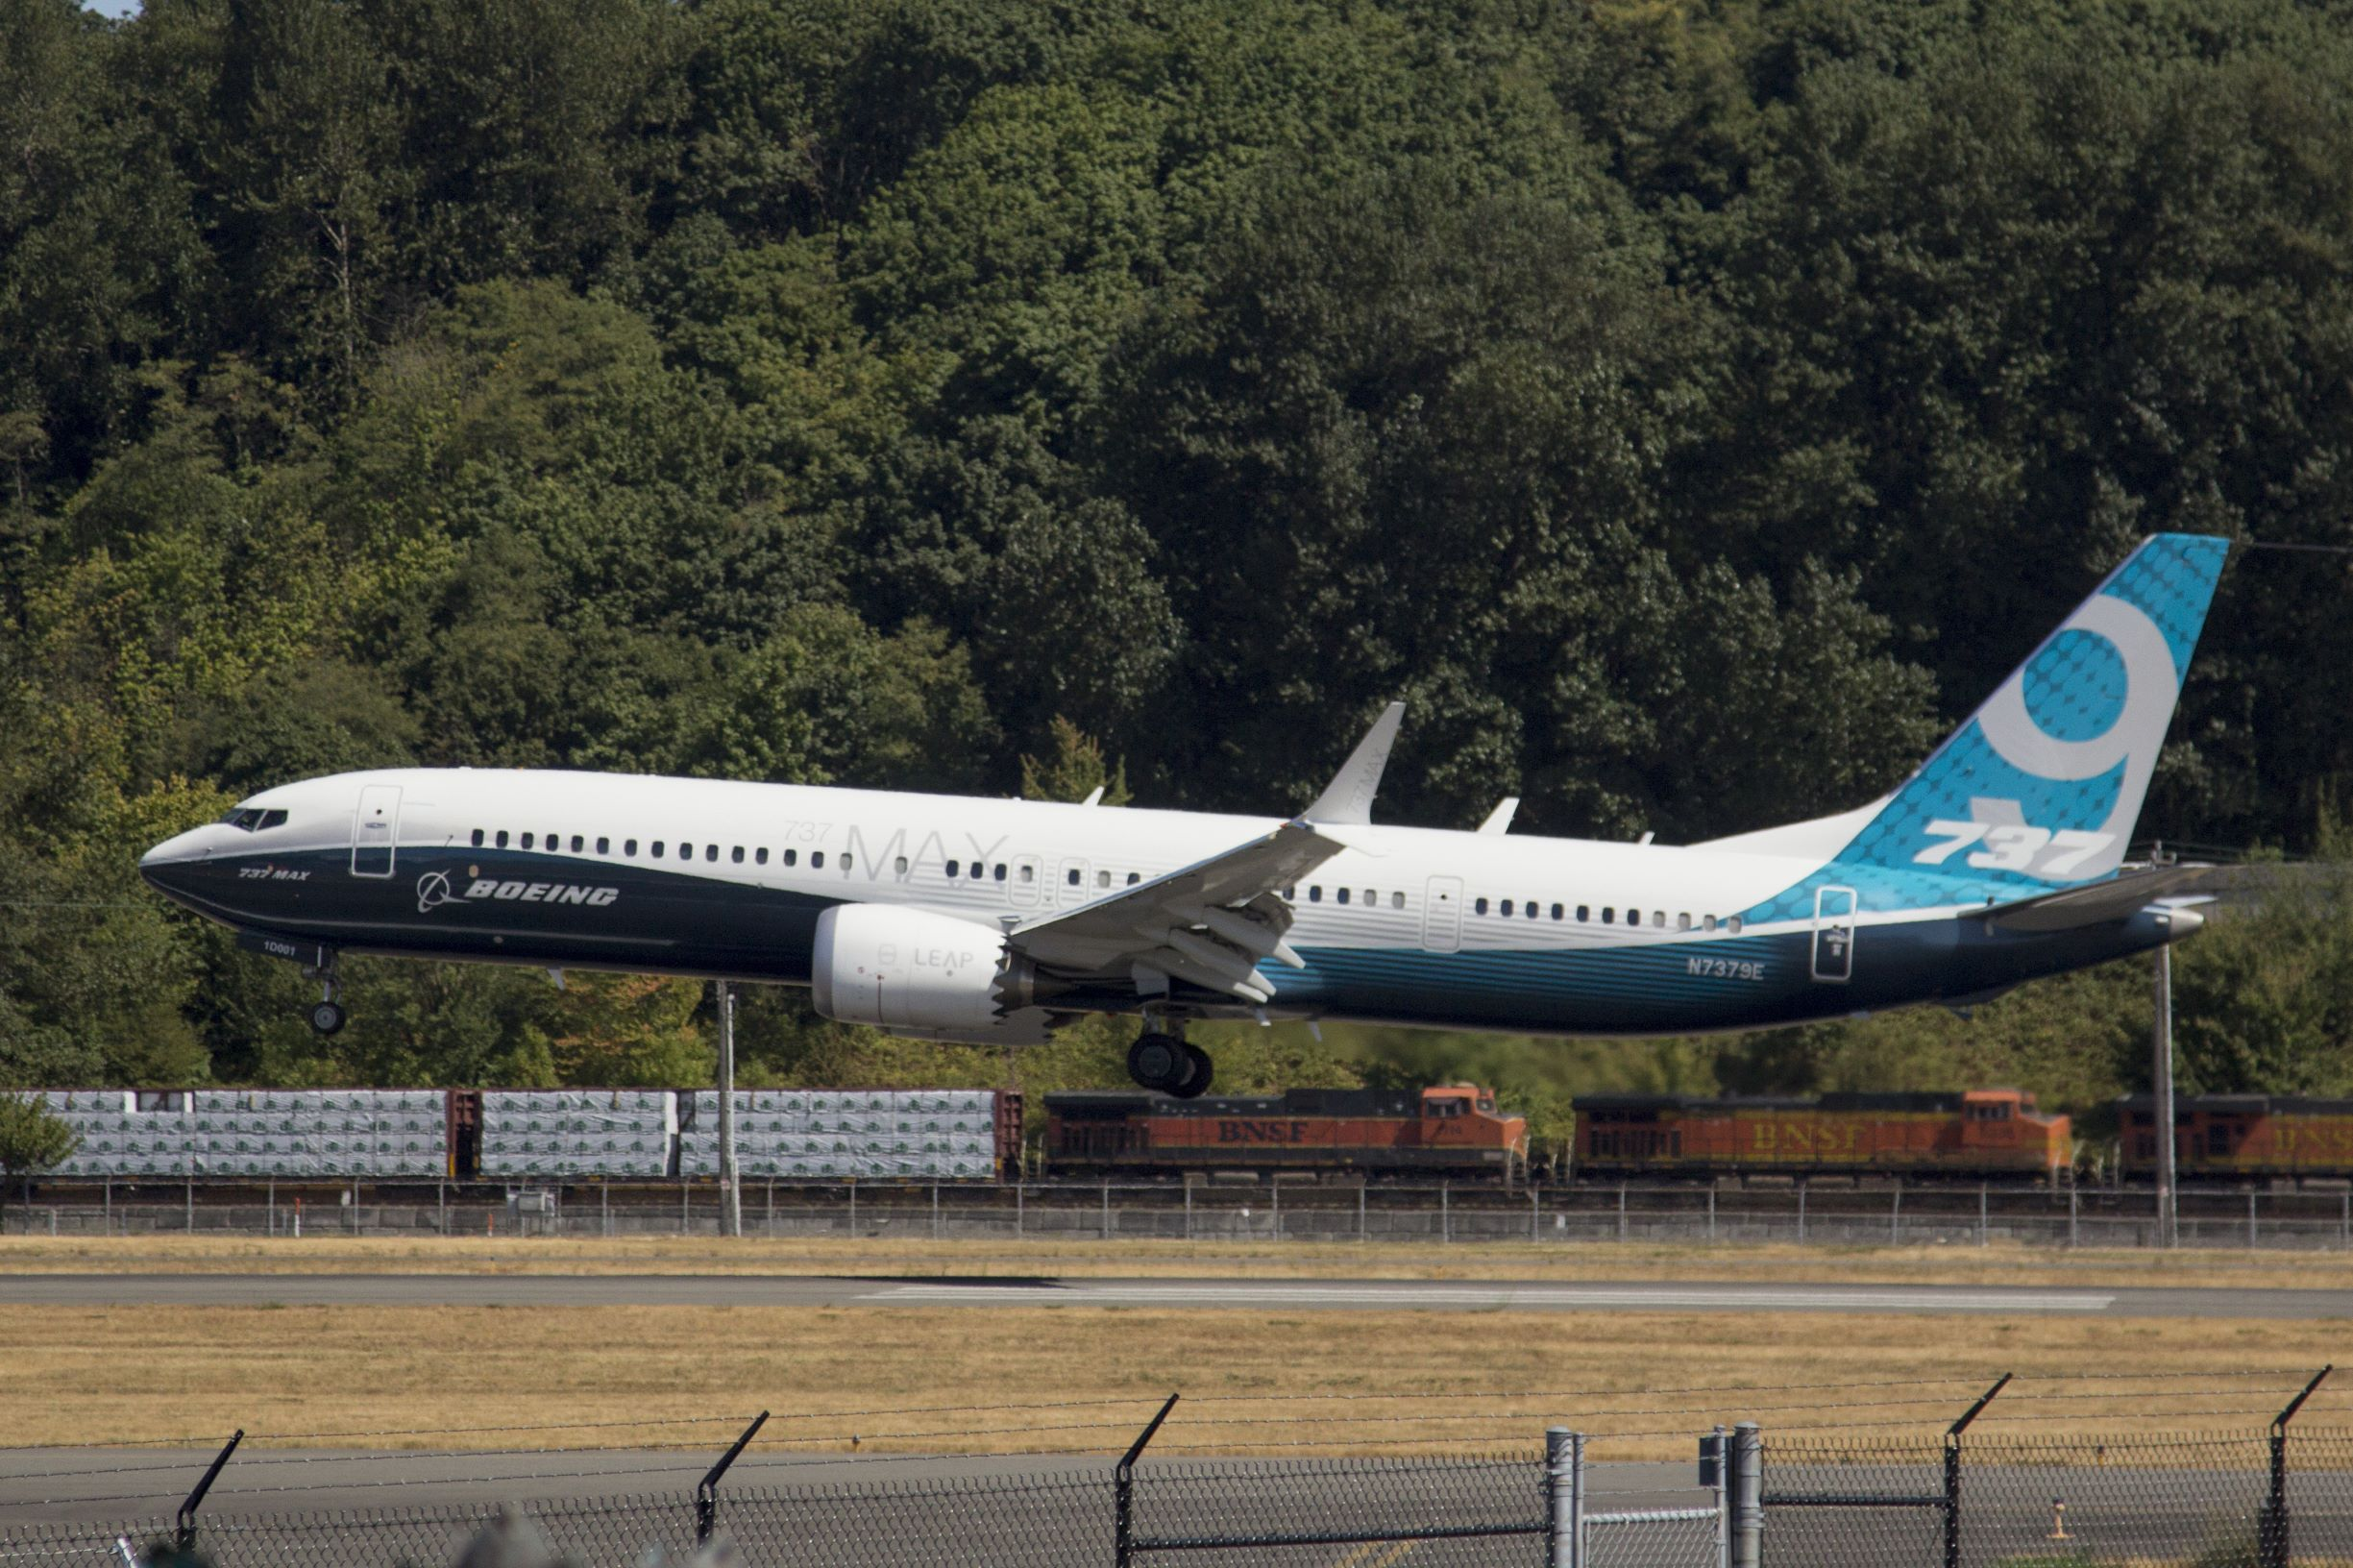 Boeing's reputation is now on the line after two fatal crashes | Igniyte